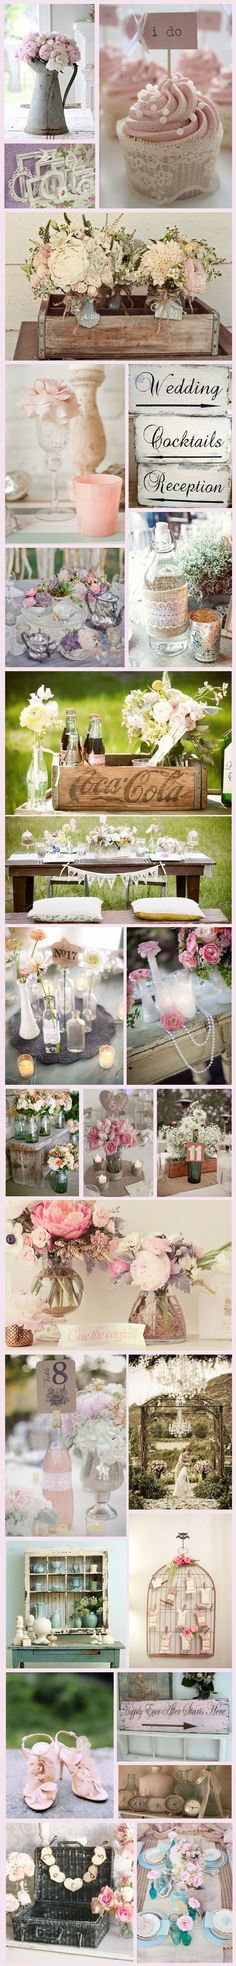 shabby chic wedding :)